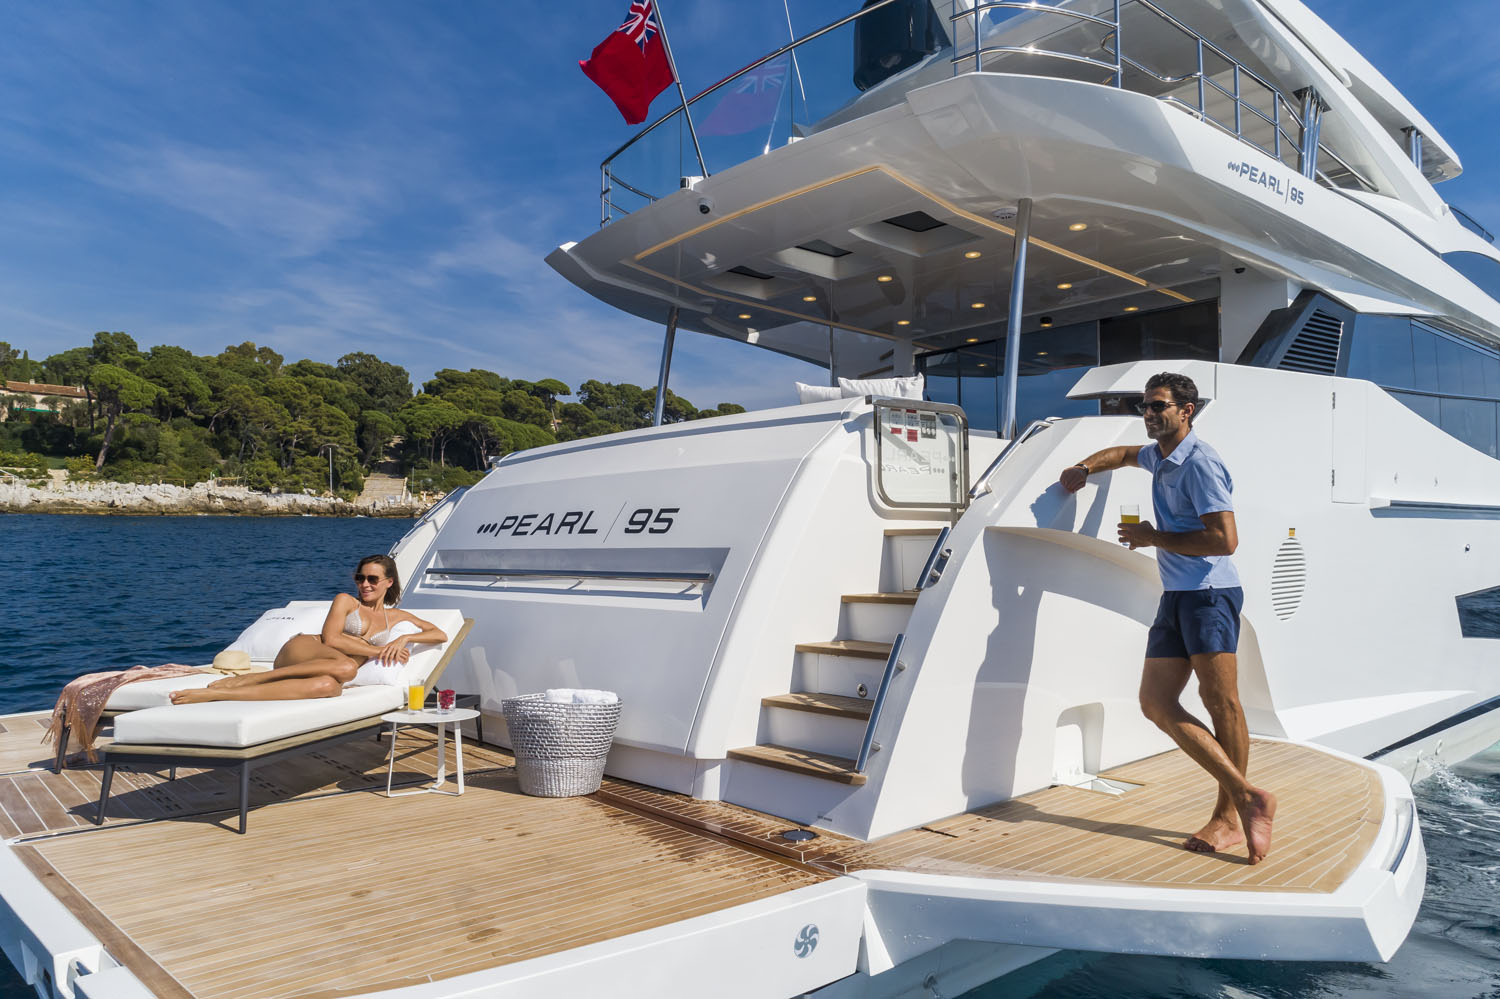 PEARL YACHTS AT THE PALMA INTERNATIONAL BOAT SHOW